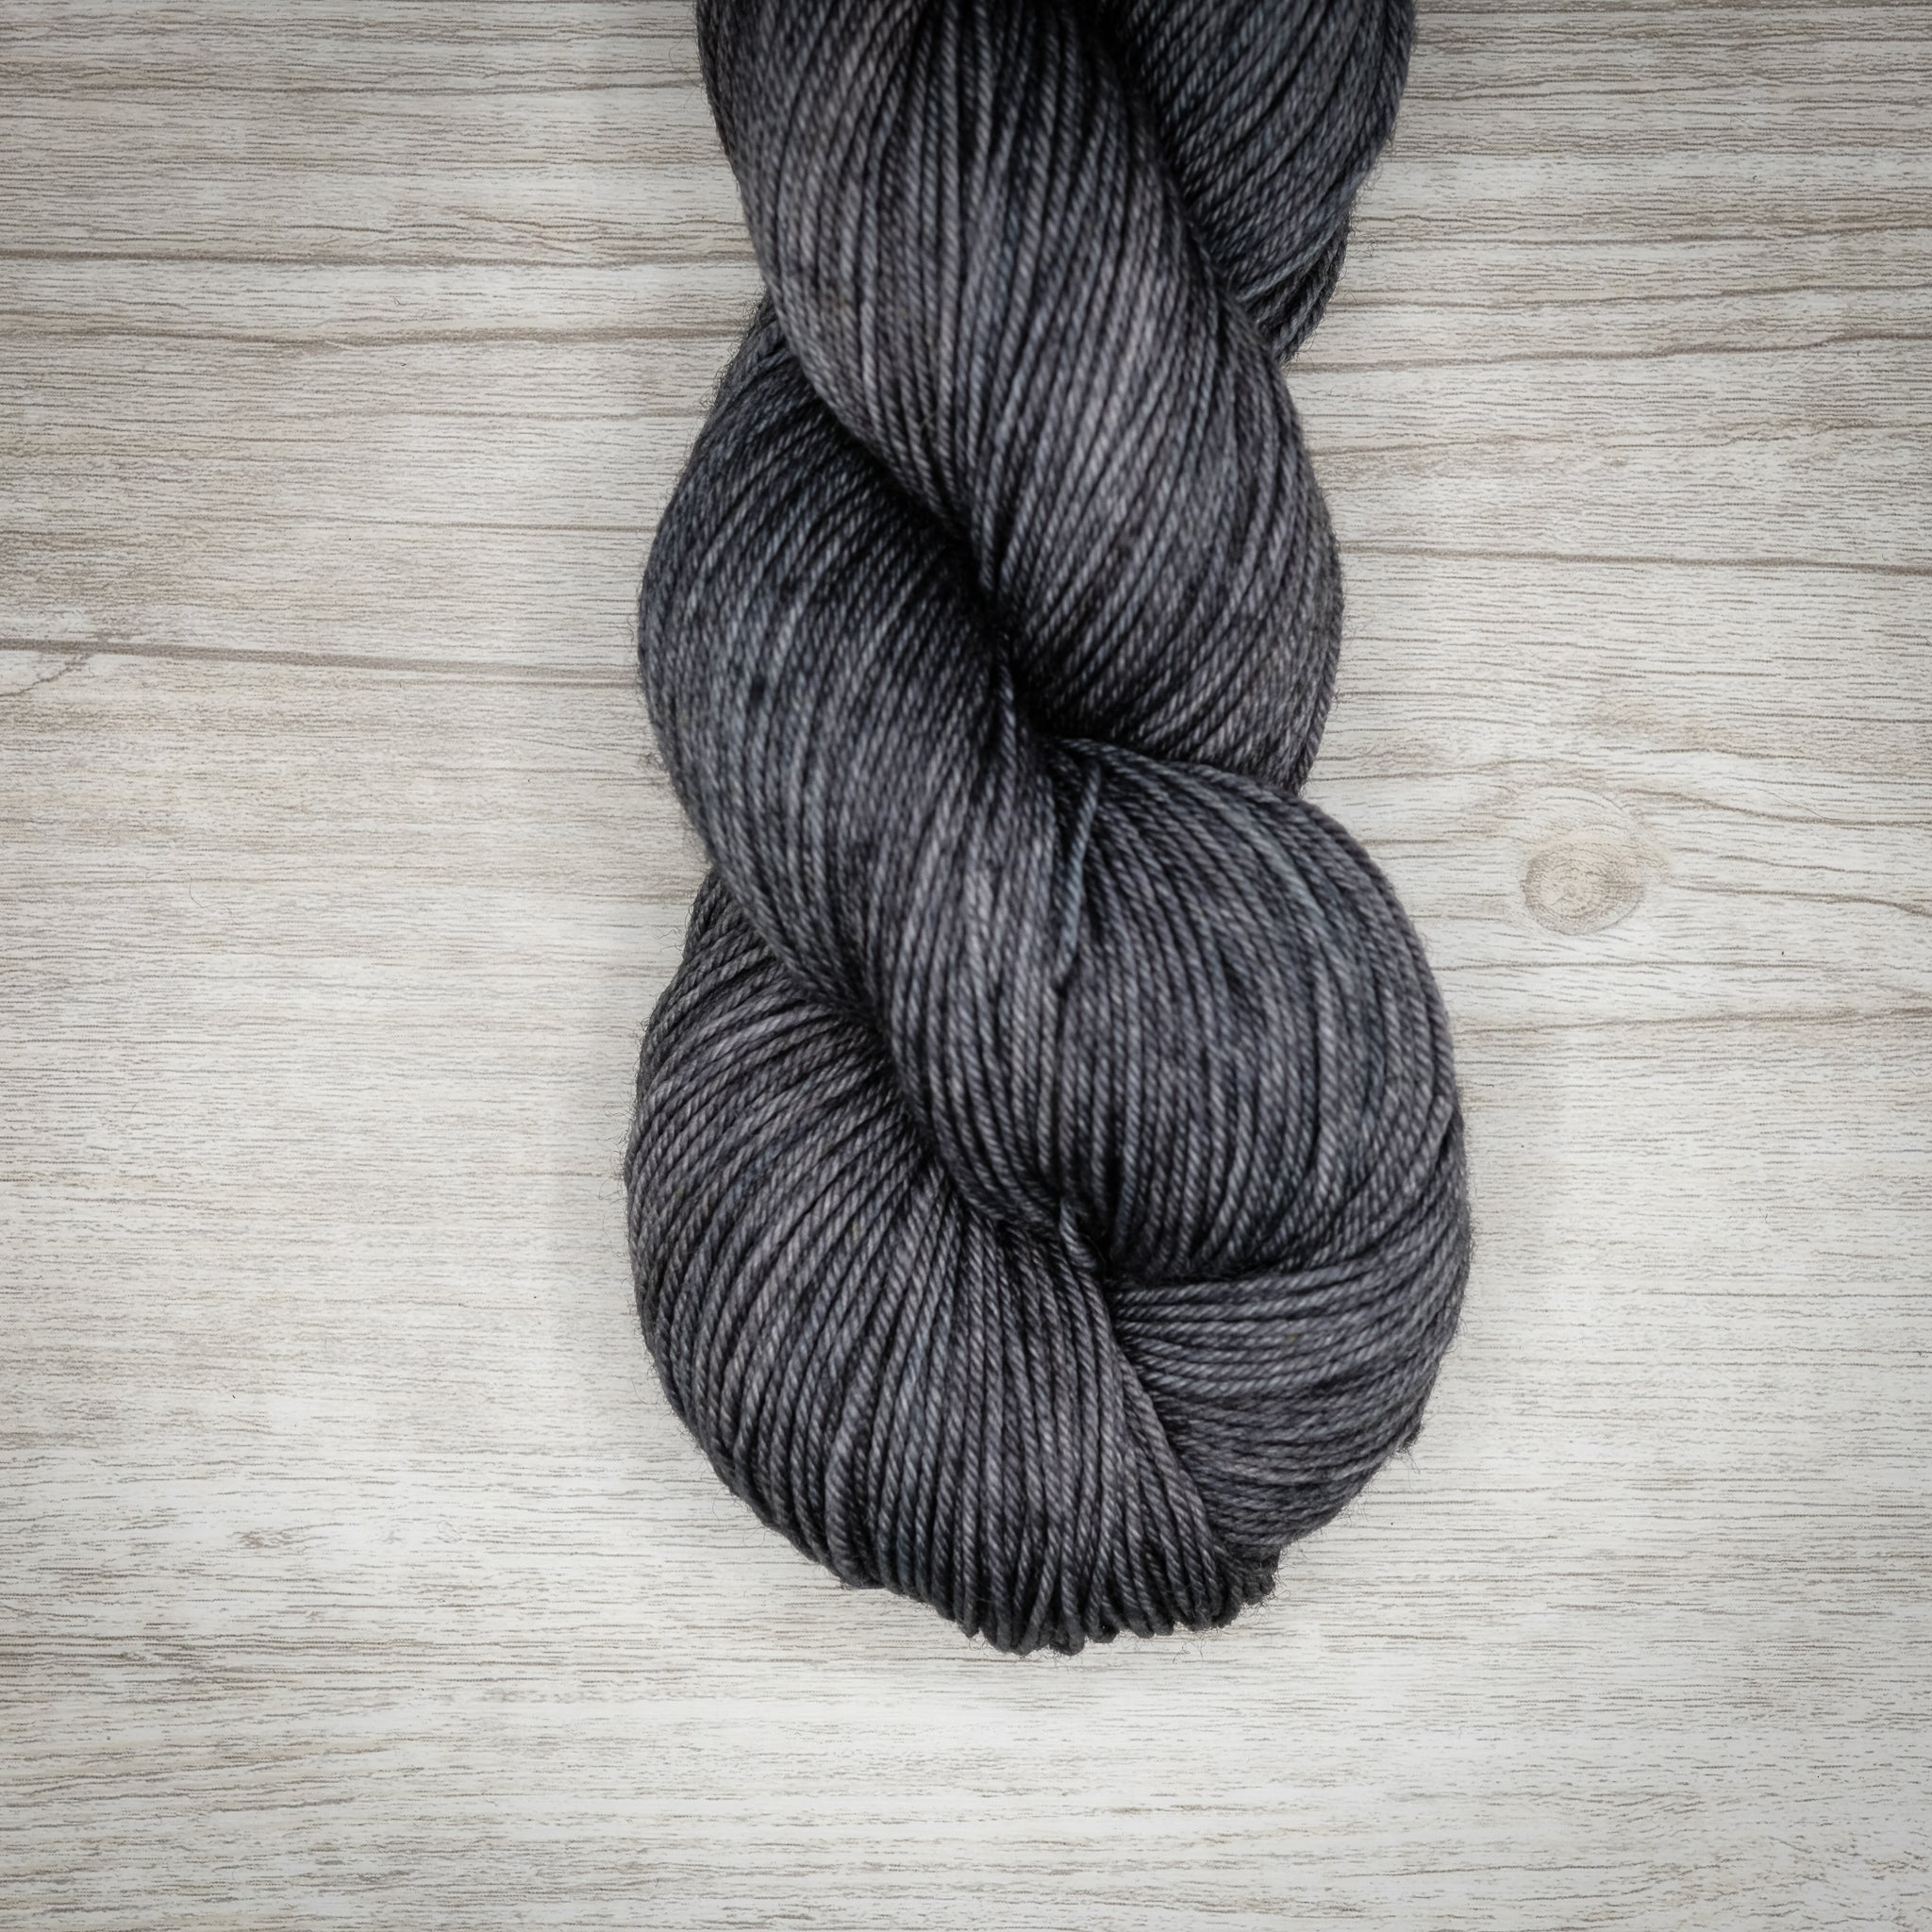 Charcoal - Merino Linen Singles Dyed to Order